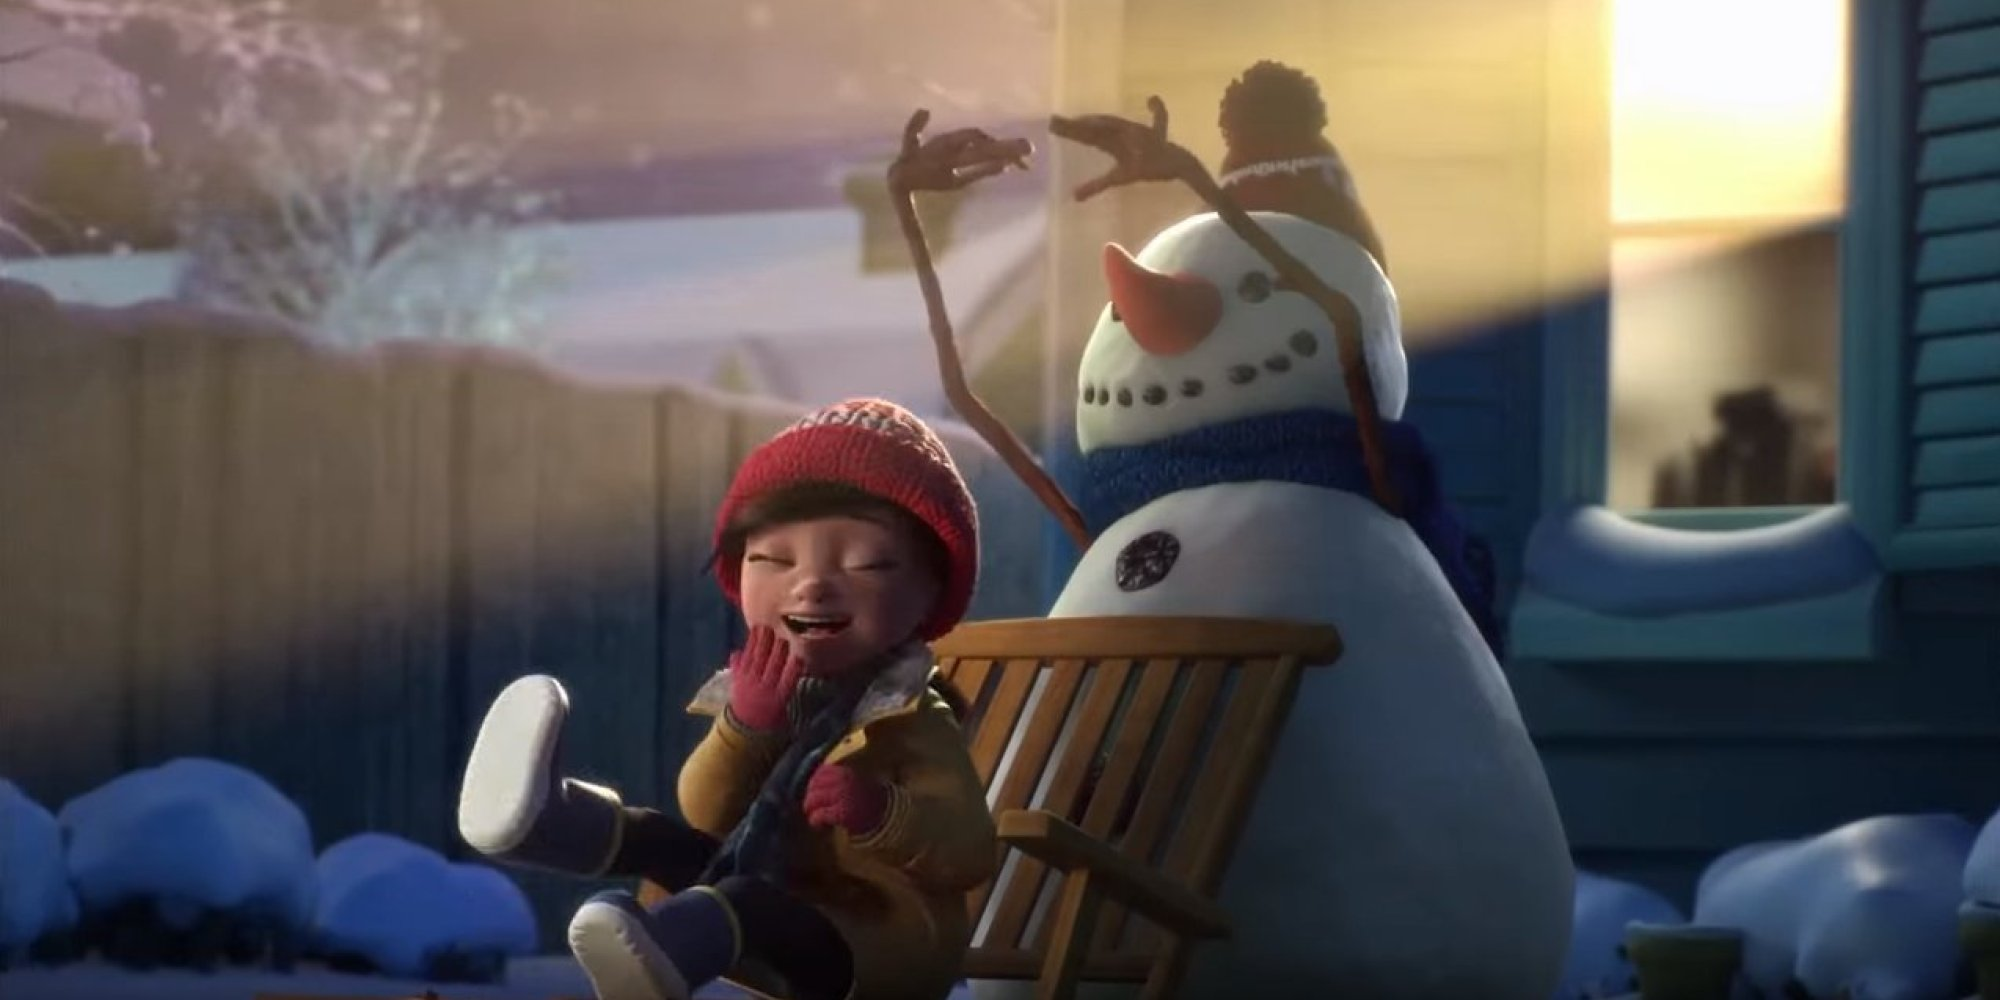 Lily And The Snowman A Touching Christmas Short Made